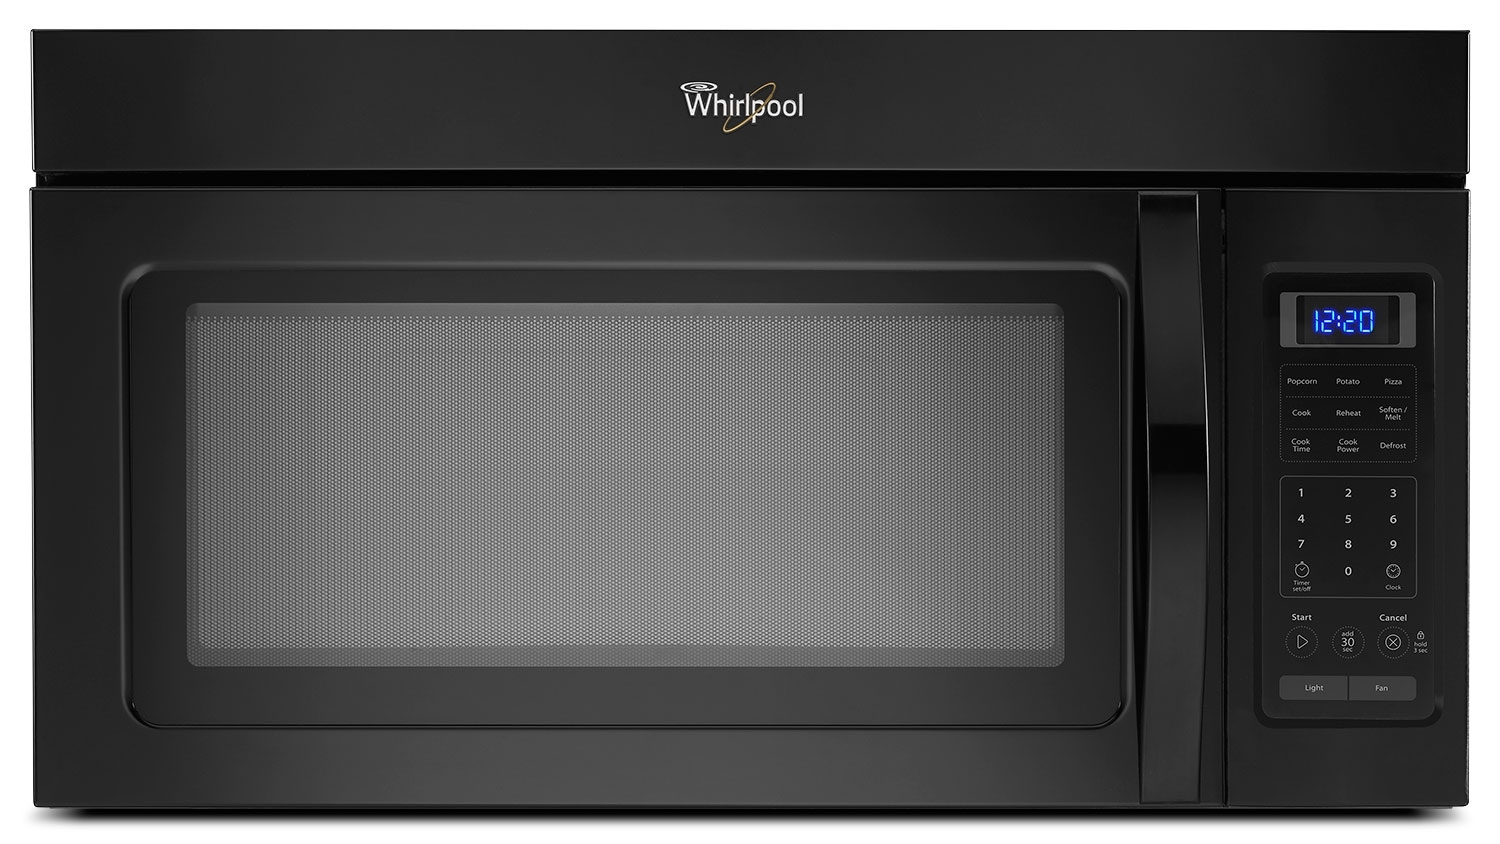 Whirlpool Black Over-the-Range Microwave (1.7 Cu. Ft.) - YWMH31017AB